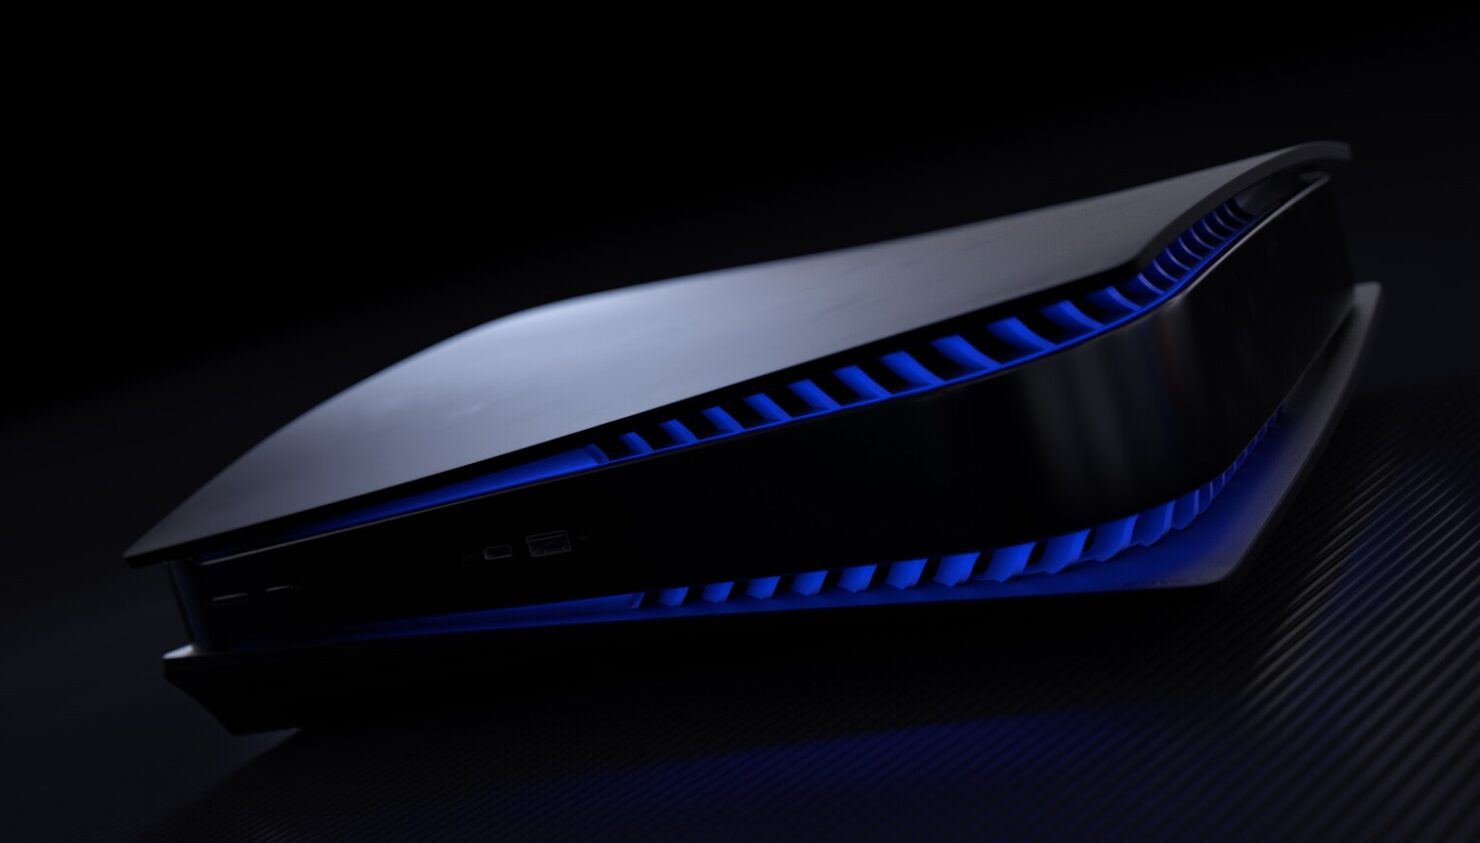 sony-playstation-5-pro-targetting-late-2023-2024-launch,-pricing-at-around-$600-$700-premium-8k-gaming-segment